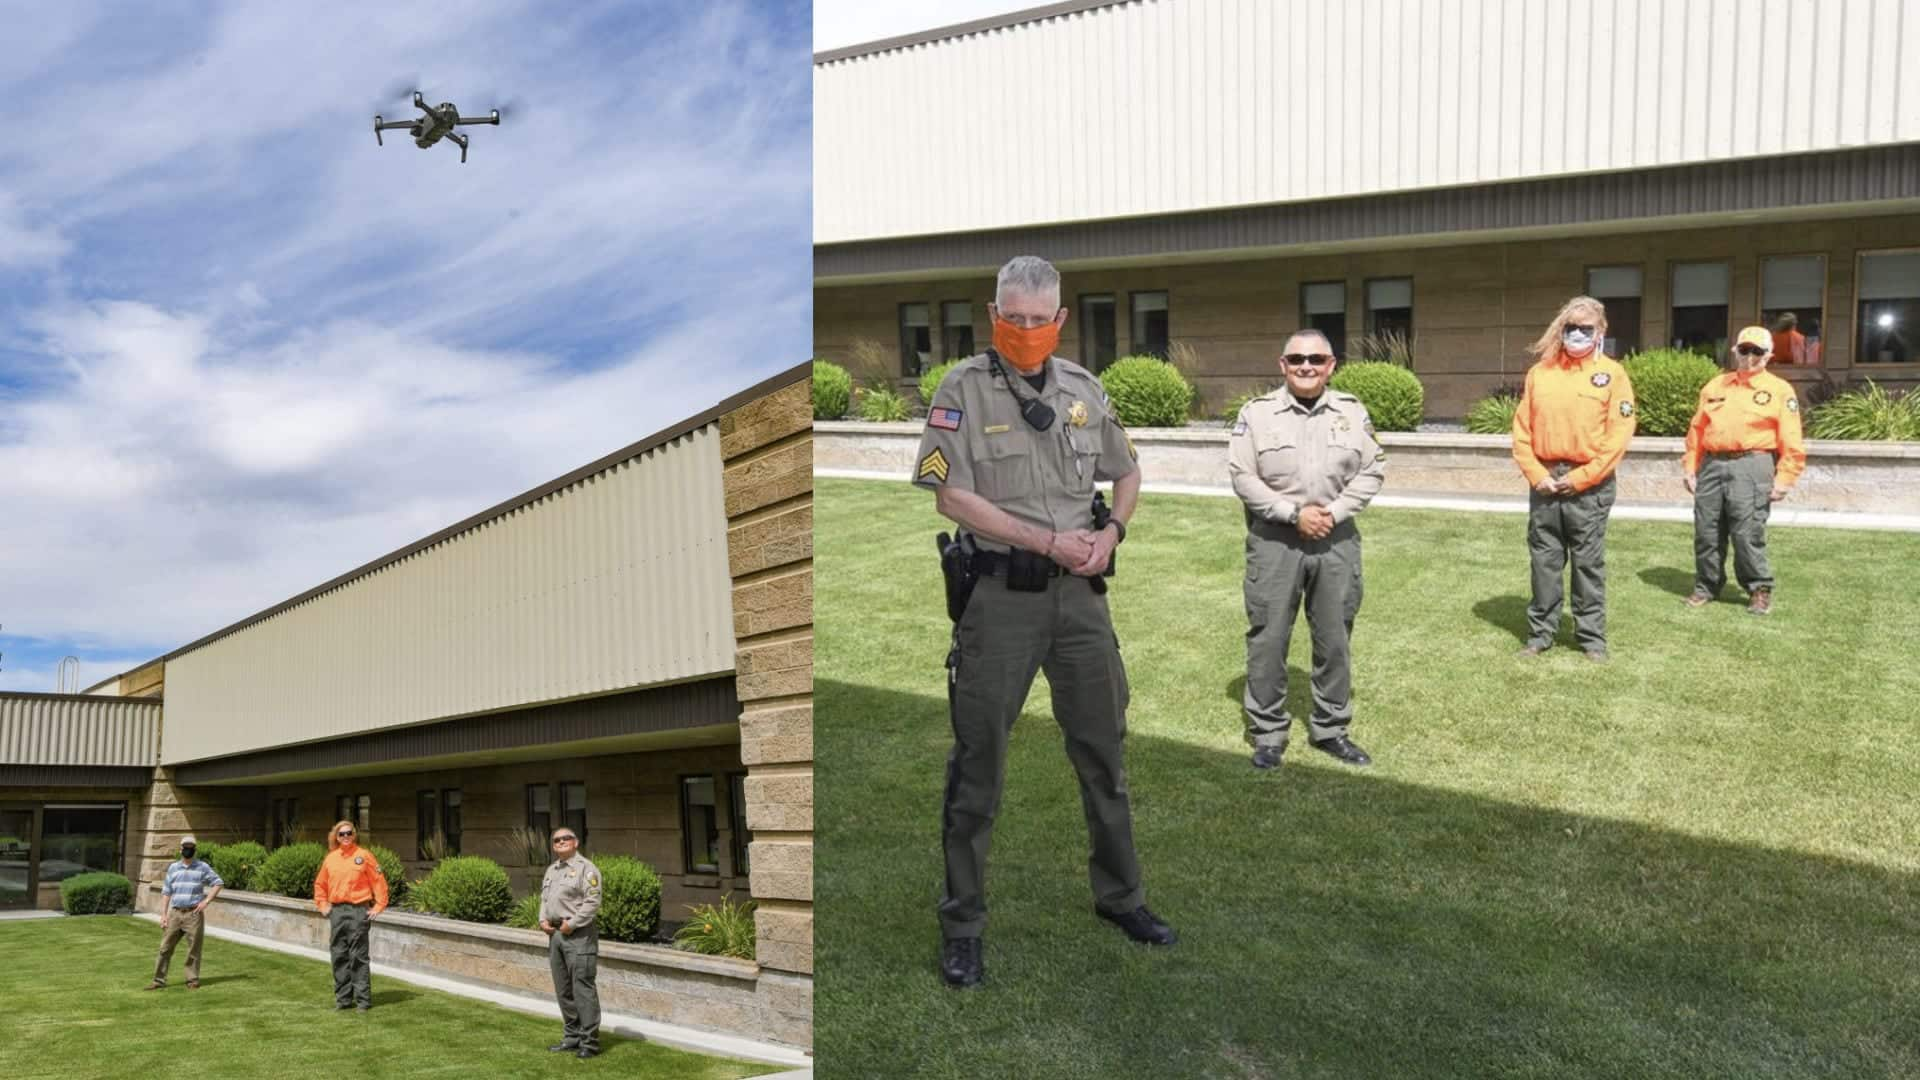 Umatilla Electric Cooperative donated $5,000 to the Umatilla County Search and Rescue team in Oregon to buy DJI Mavic 2 Enterprise Dual drone and accessories.